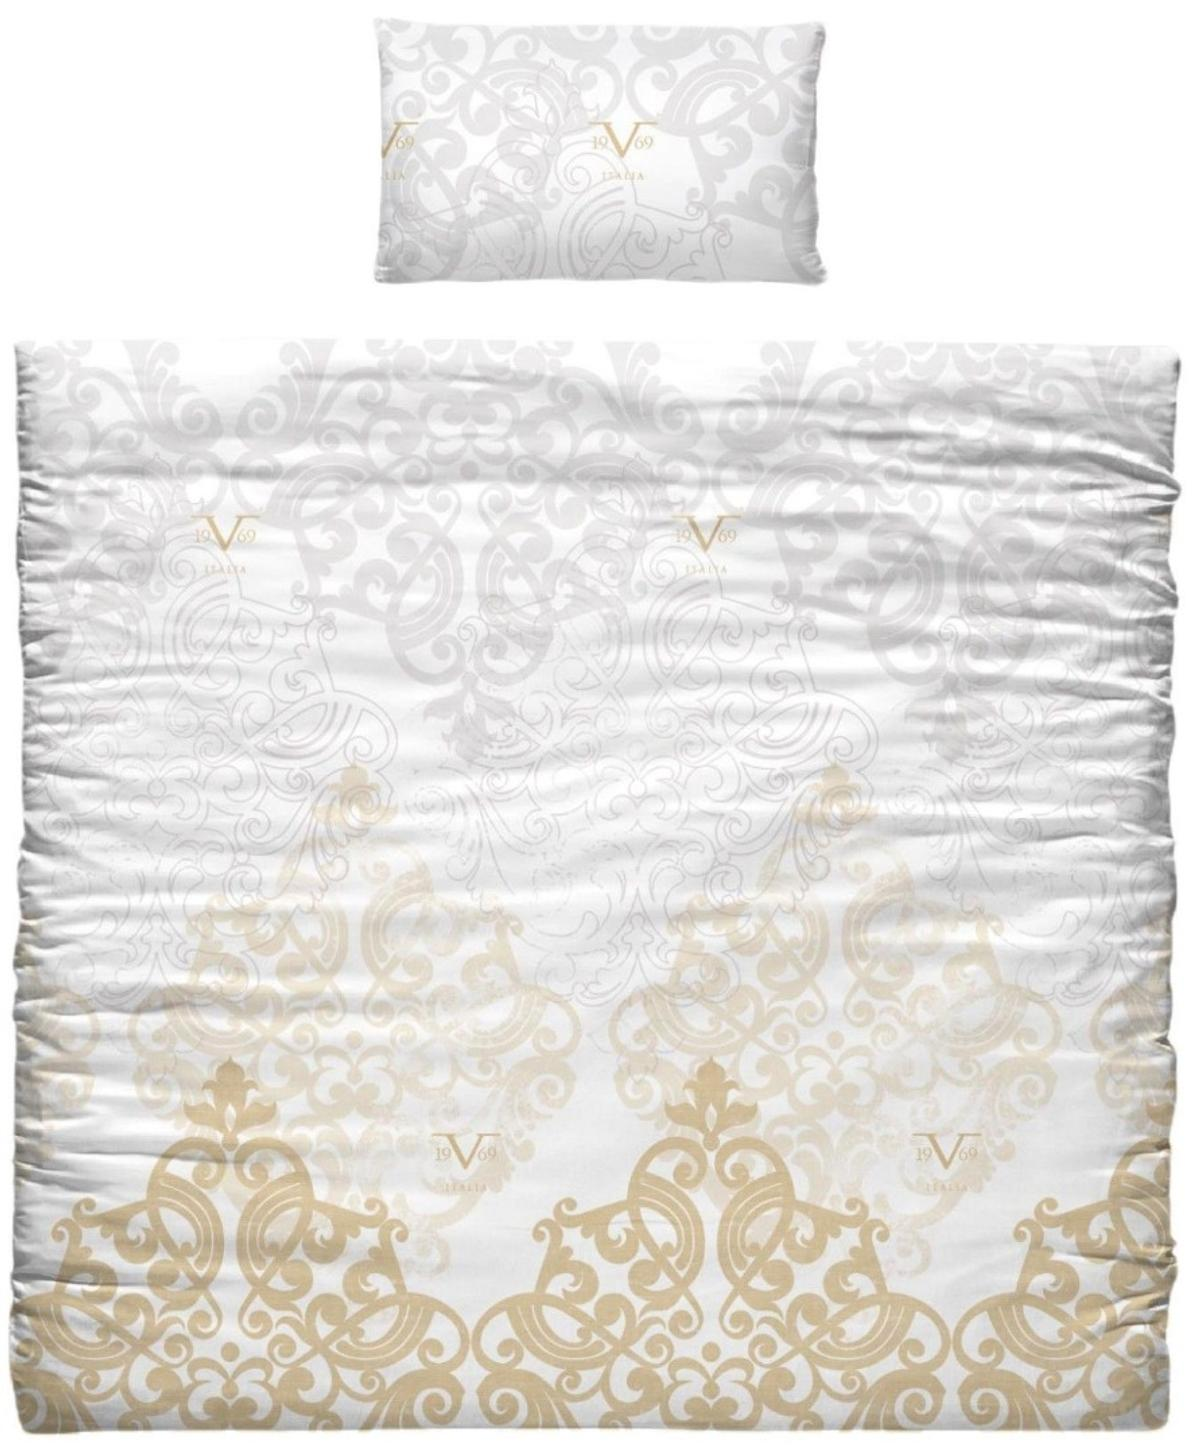 ** LUXURY GOLD & WHITE VERSACE BEDDING ** In Ng5 6ae